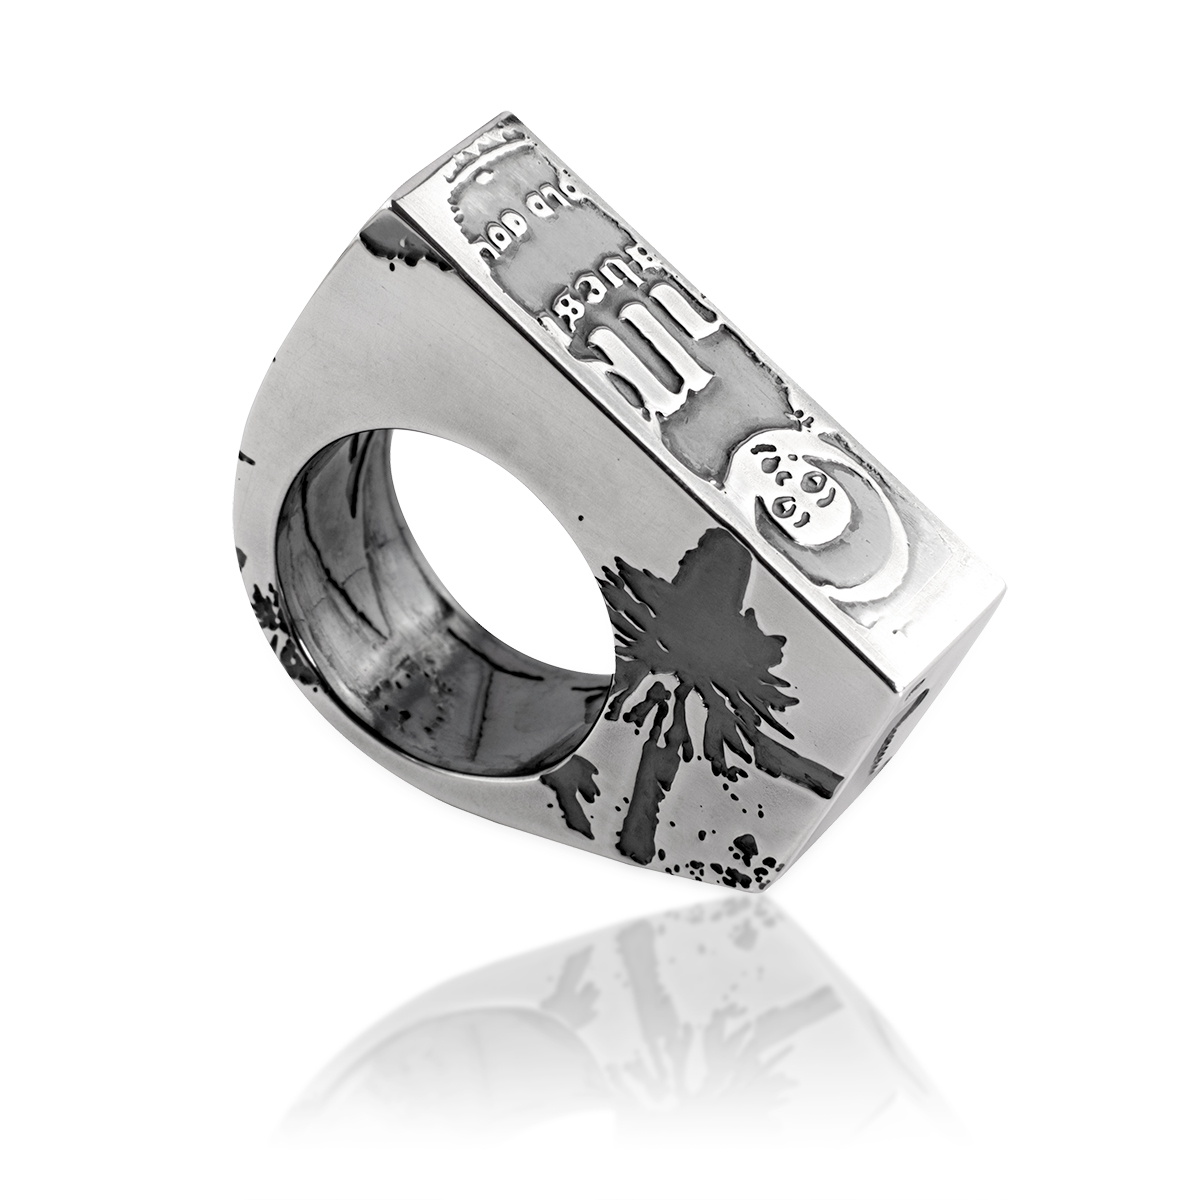 bespoke silver statement ring with etched images